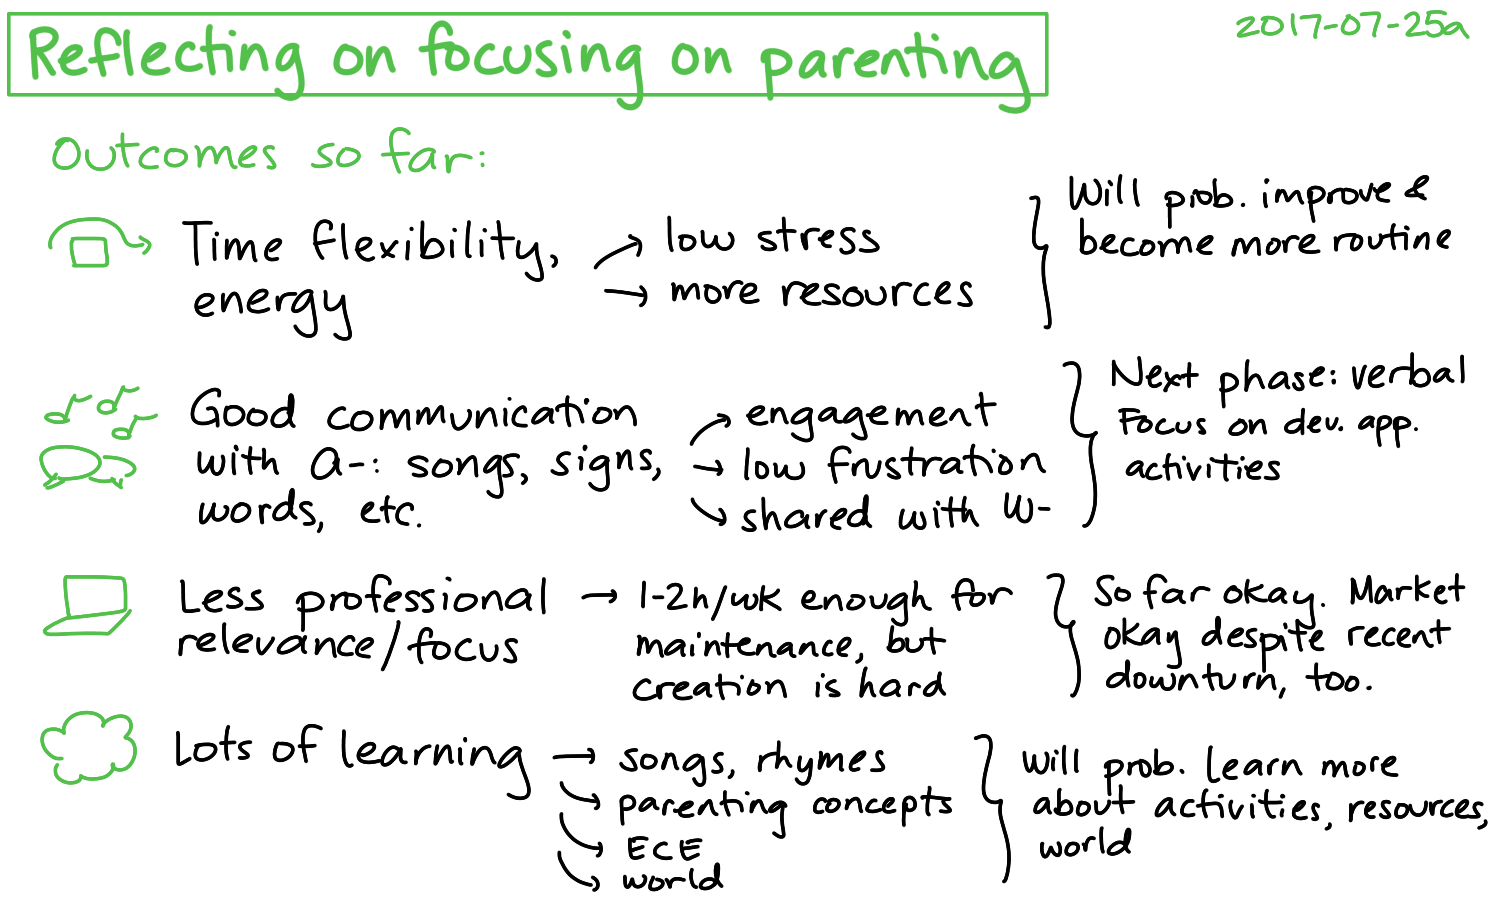 2017-07-25a Reflecting on focusing on parenting #parenting #experiment.png